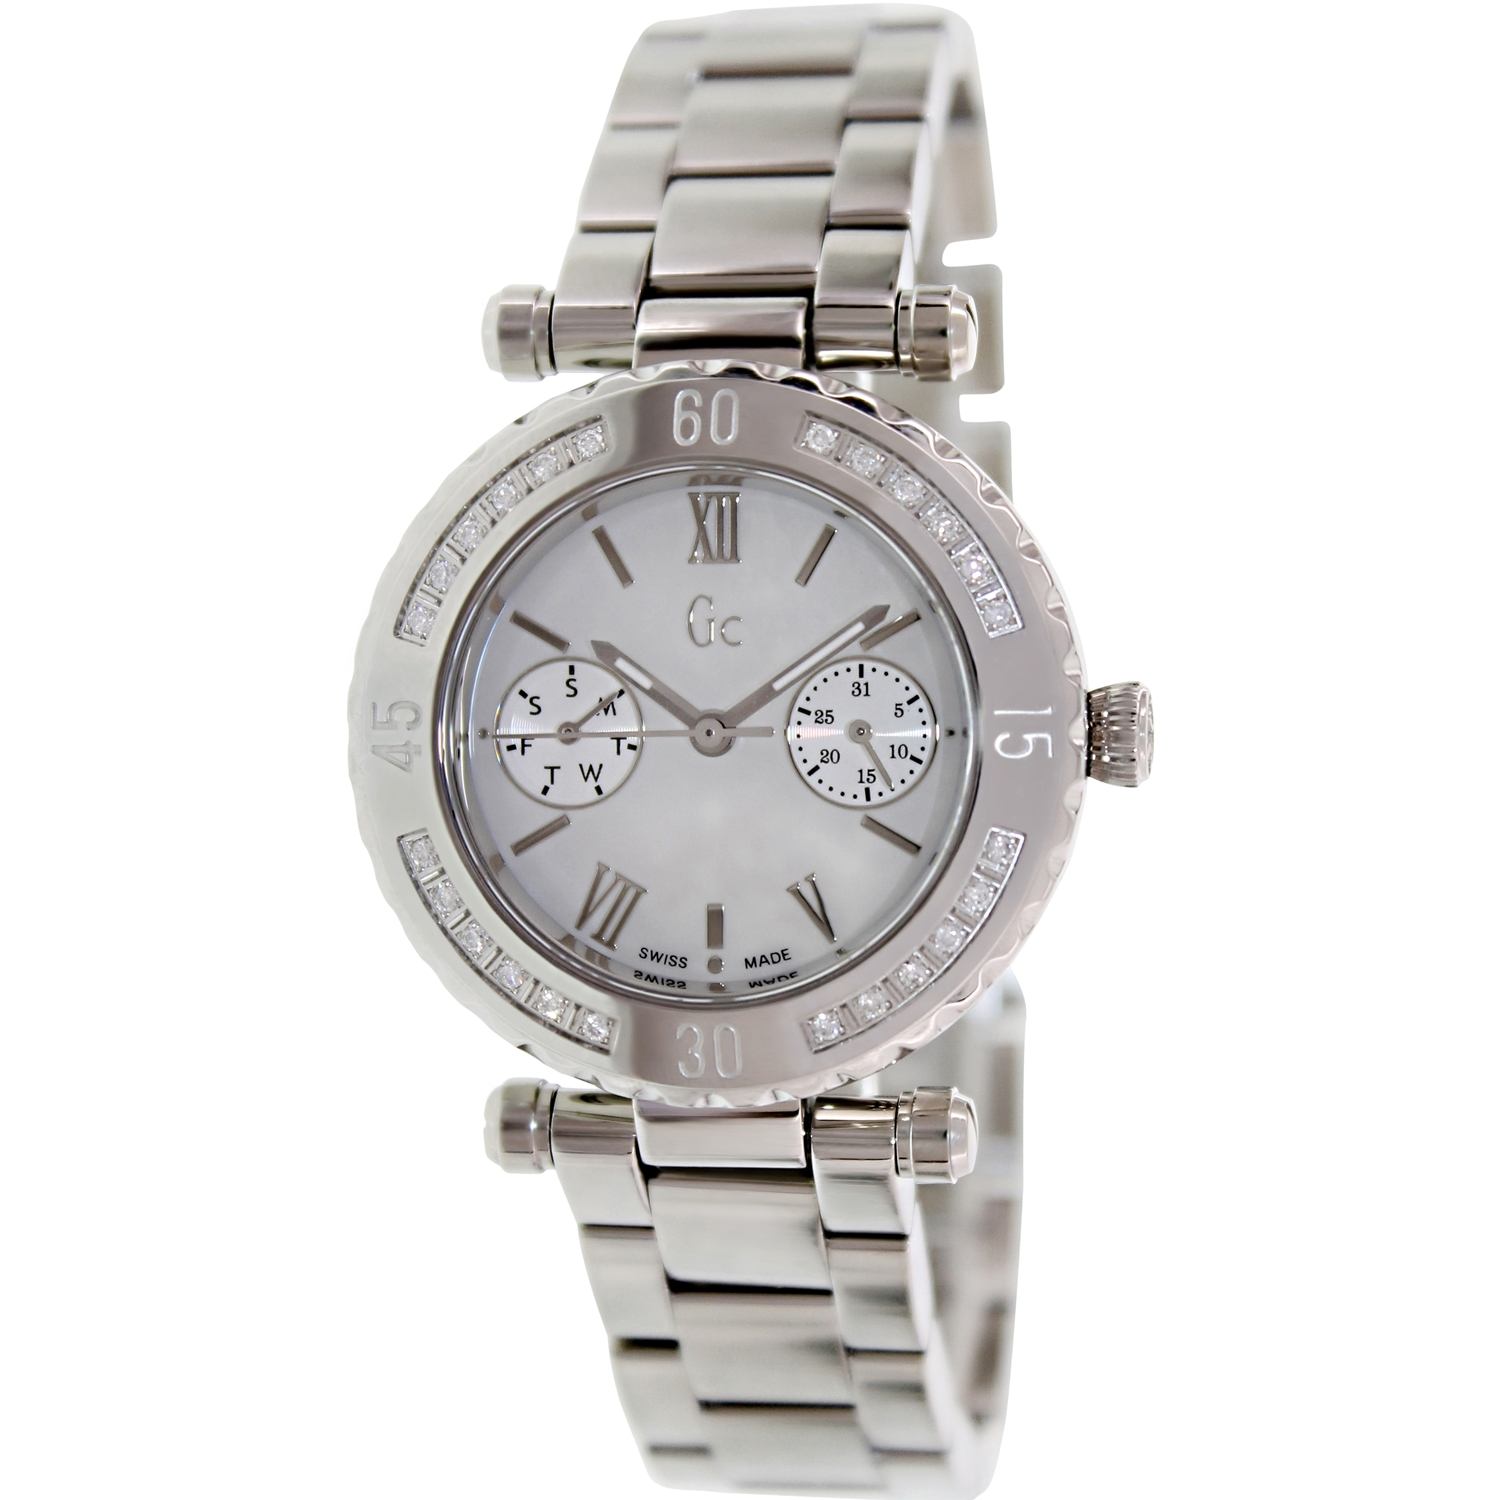 Guess Men's X42107L1S Silver Stainless-Steel Swiss Quartz Fashion Watch